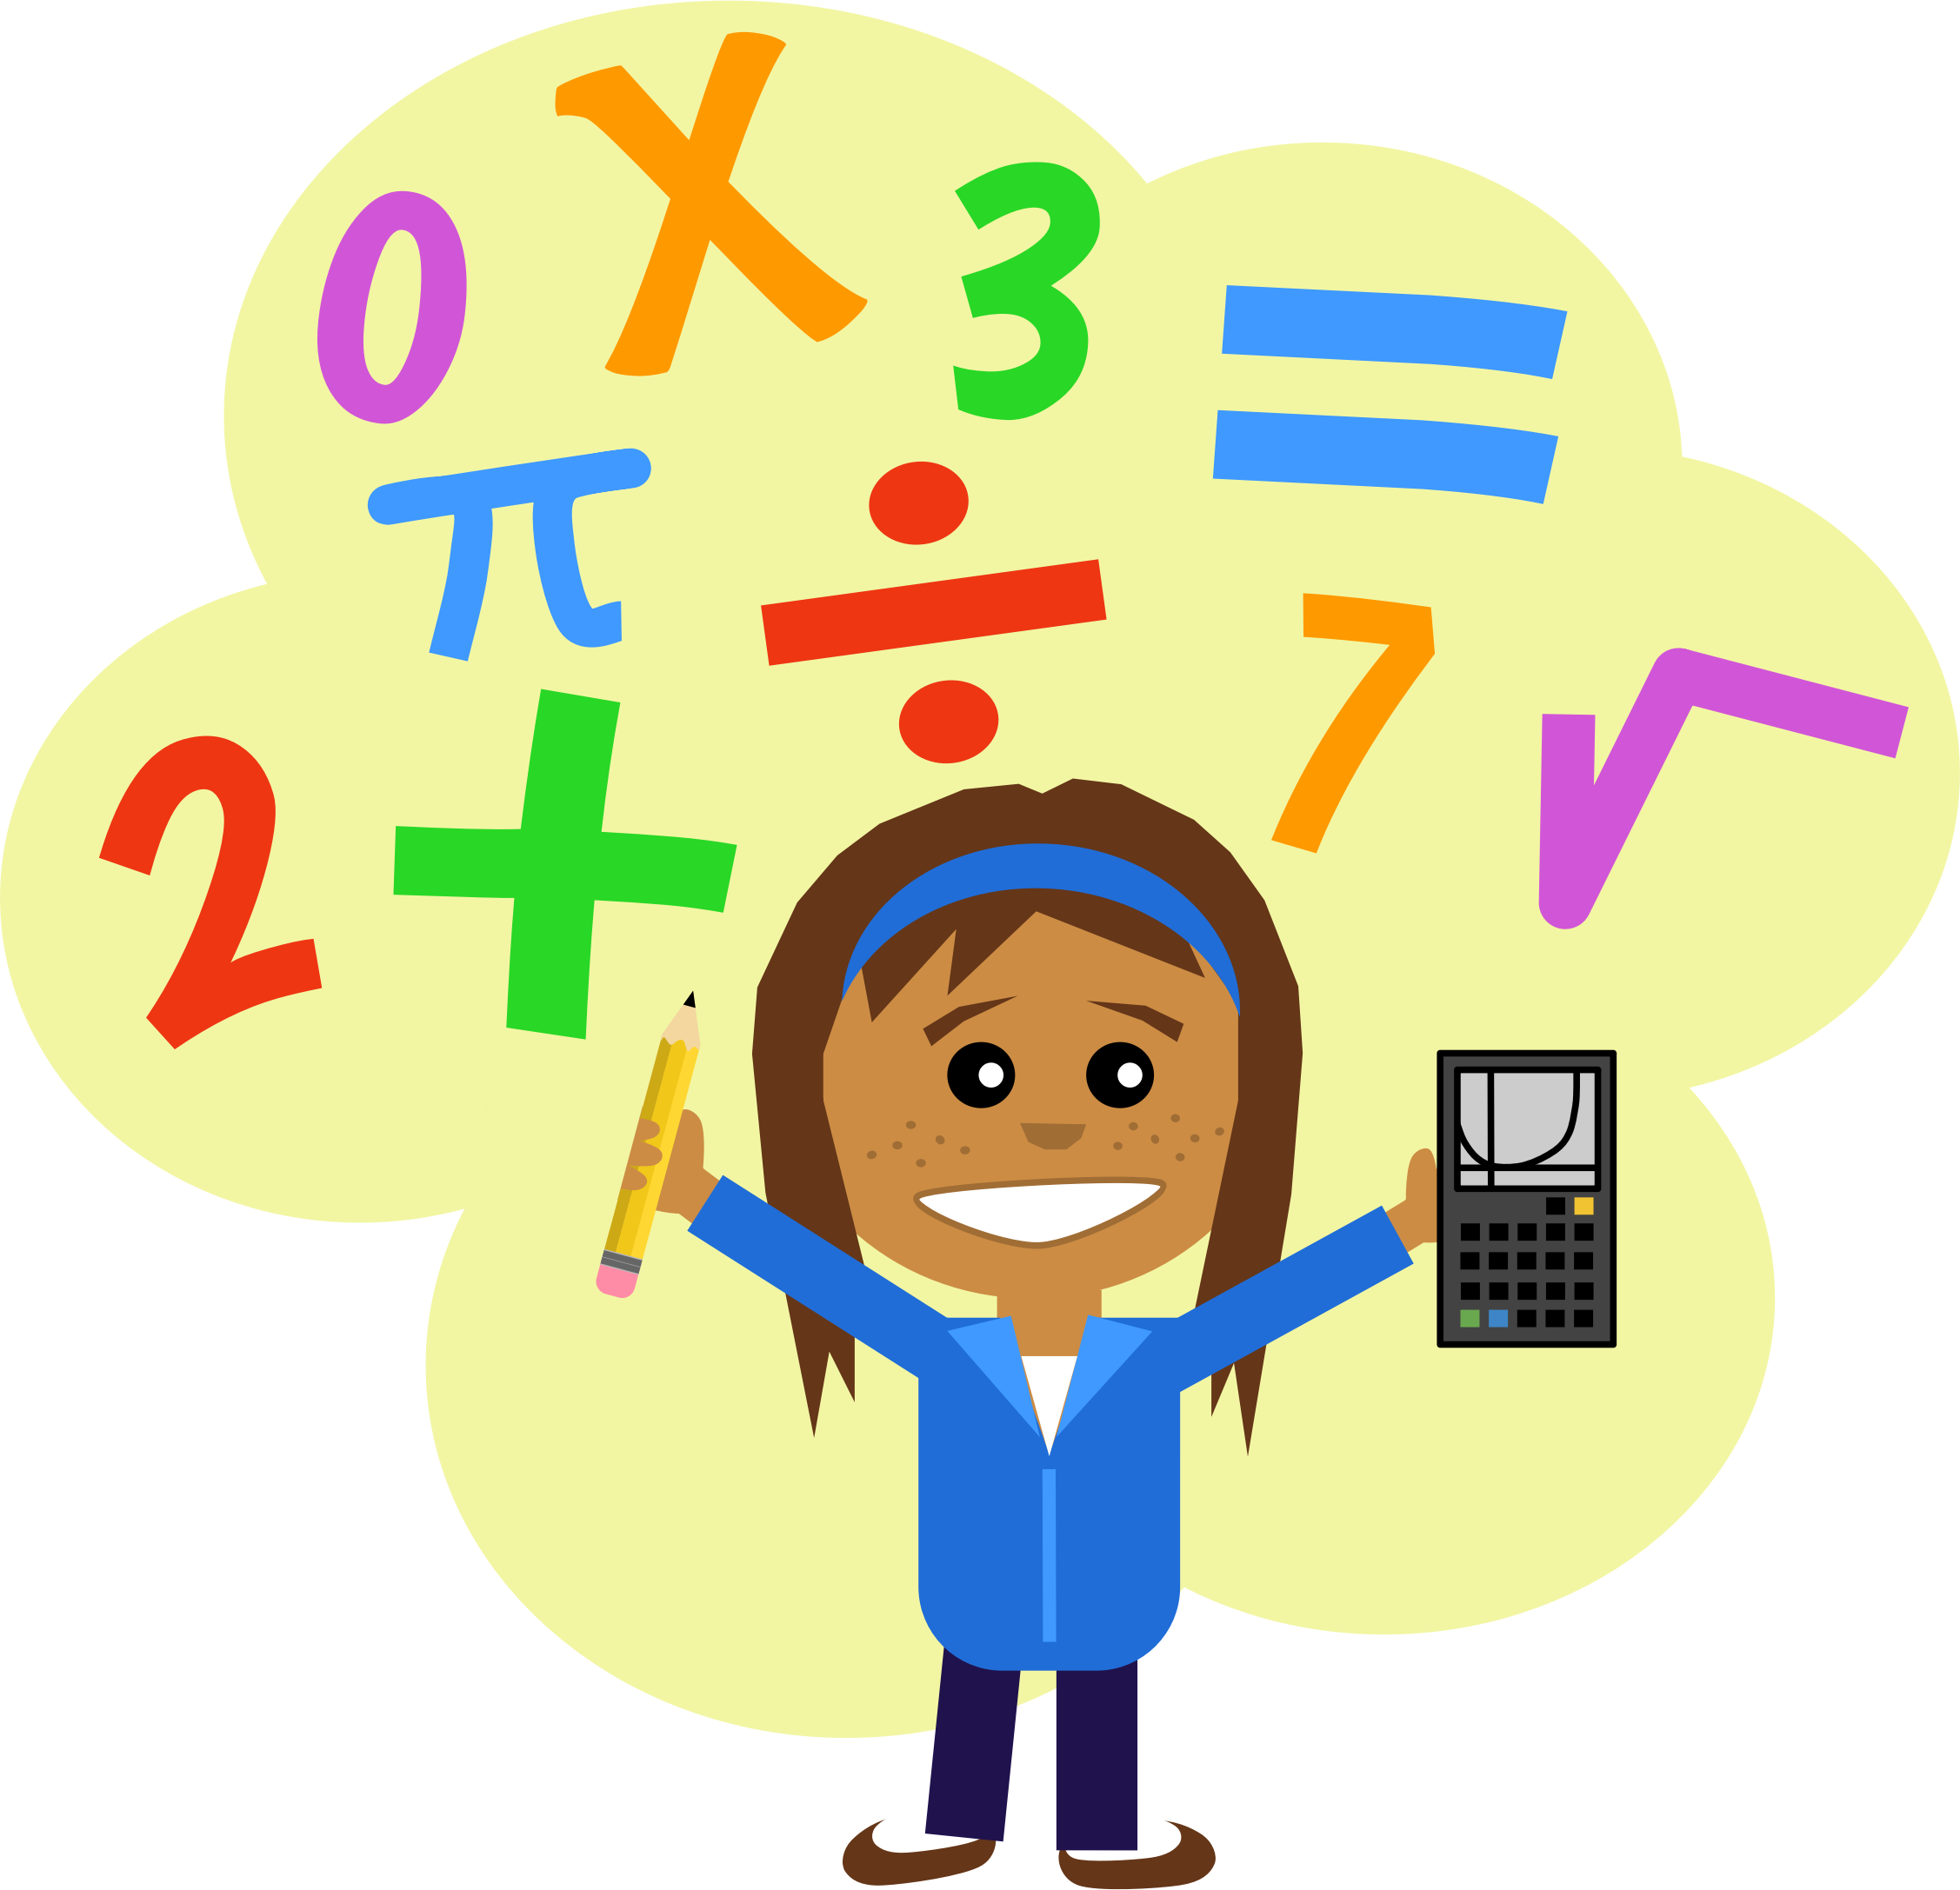 Math girl by scout girl with pencil and calculator in a cloud of math girl by scout girl with pencil and calculator in a cloud of math symbols drawn in comic style buycottarizona